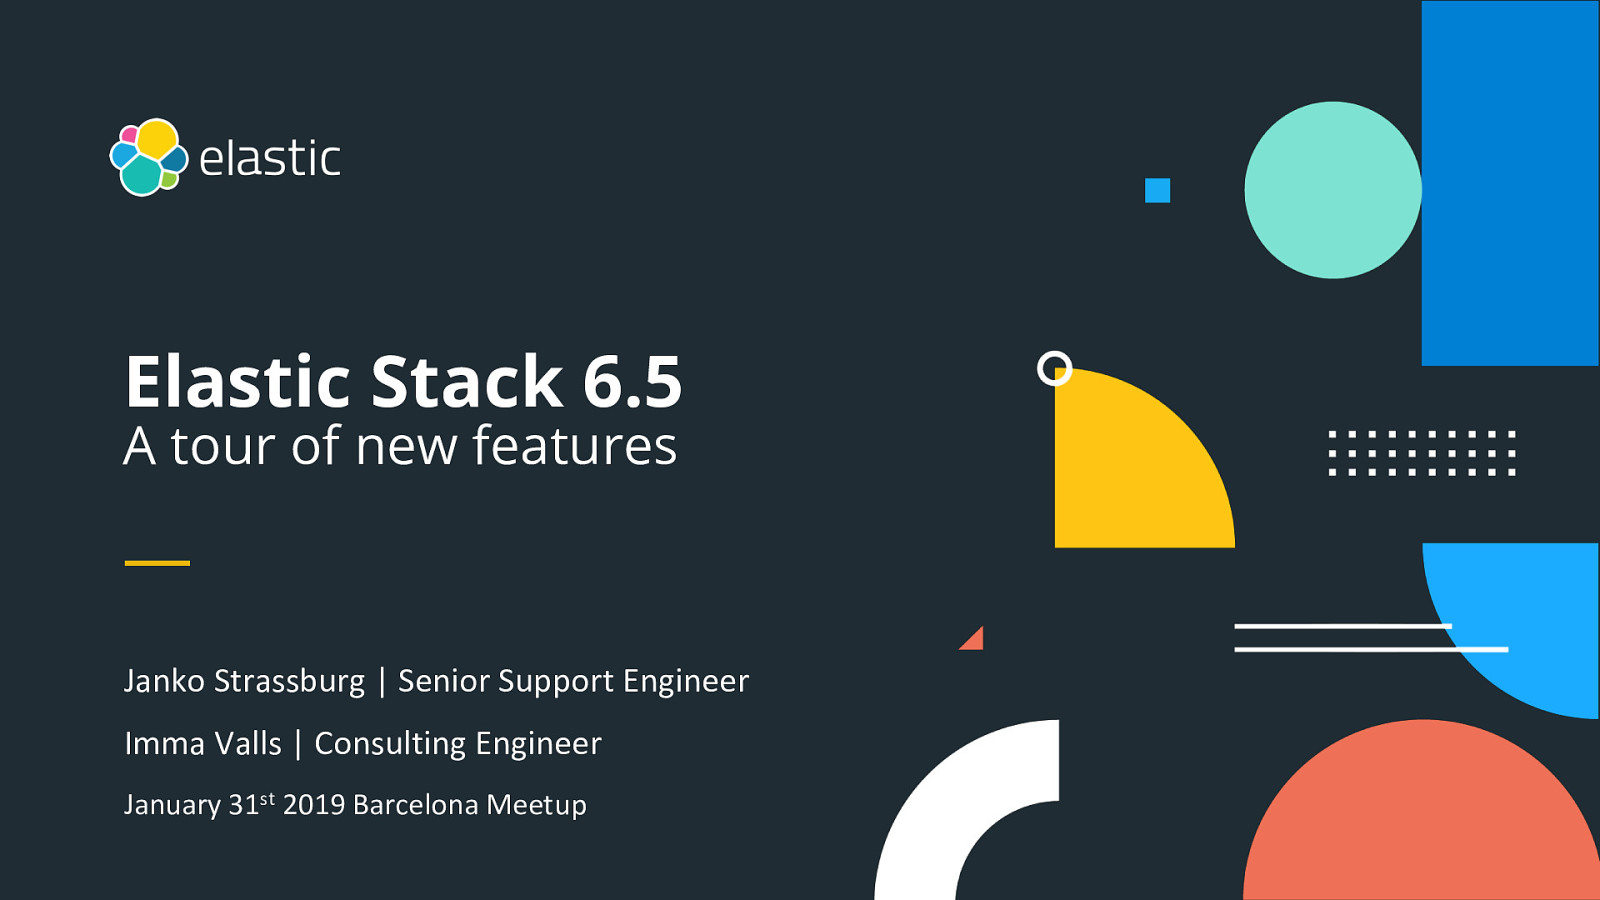 Barcelona Elastic Meetup January 31 2019 - Release 6.5 features